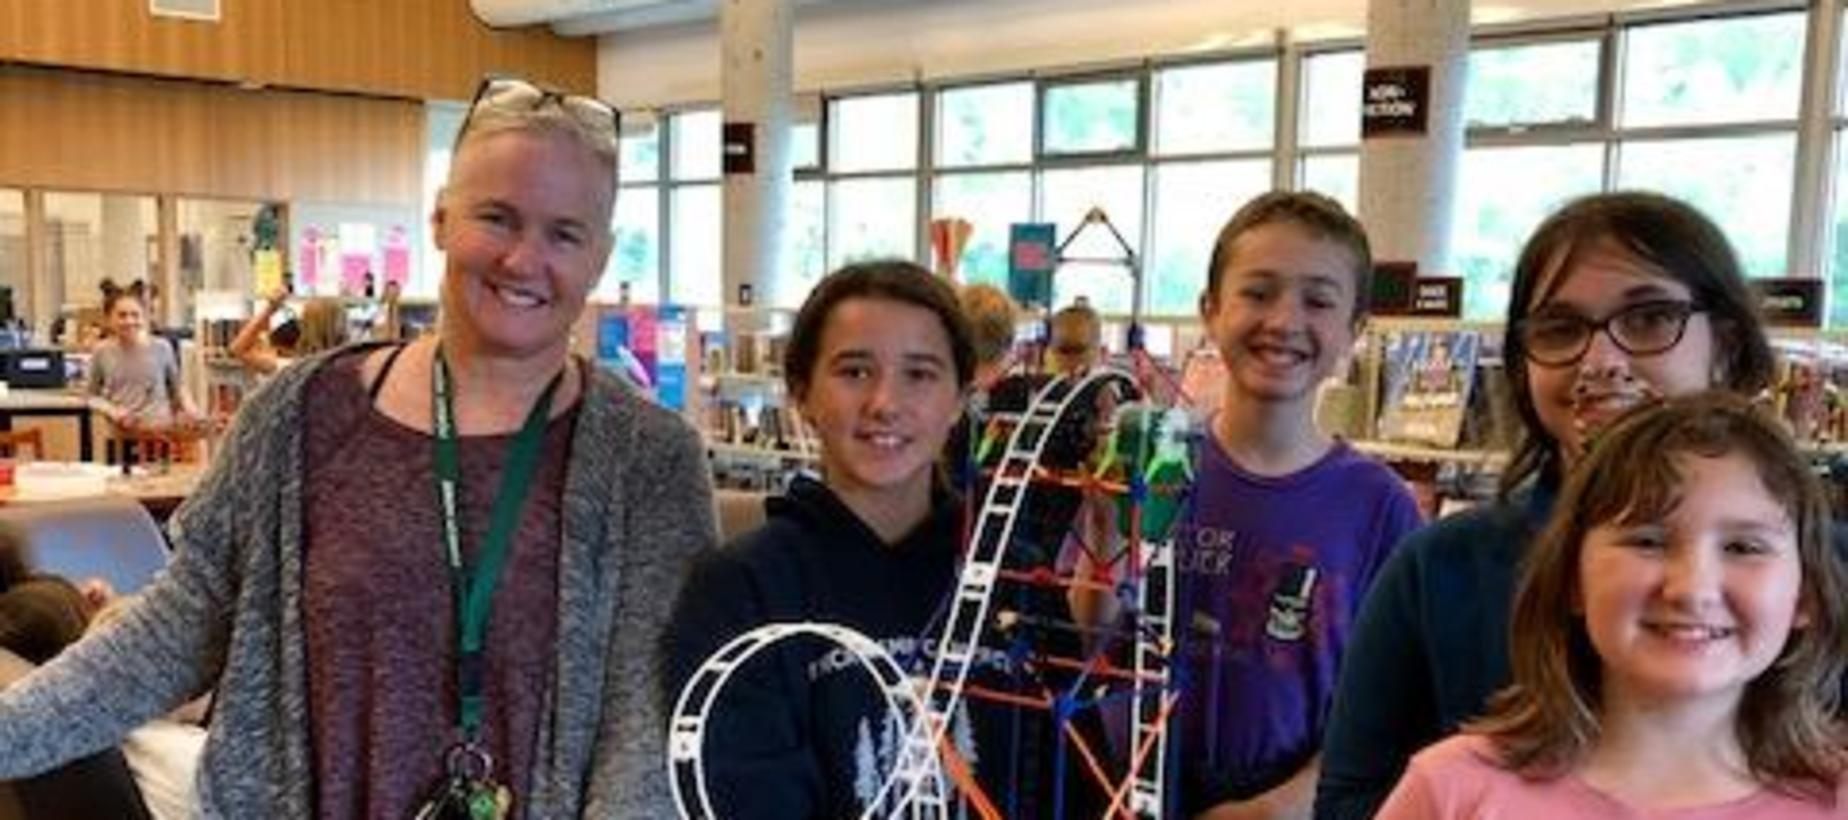 Ms. Snedeker and friends building roller coasters in our Maker's Space/Library